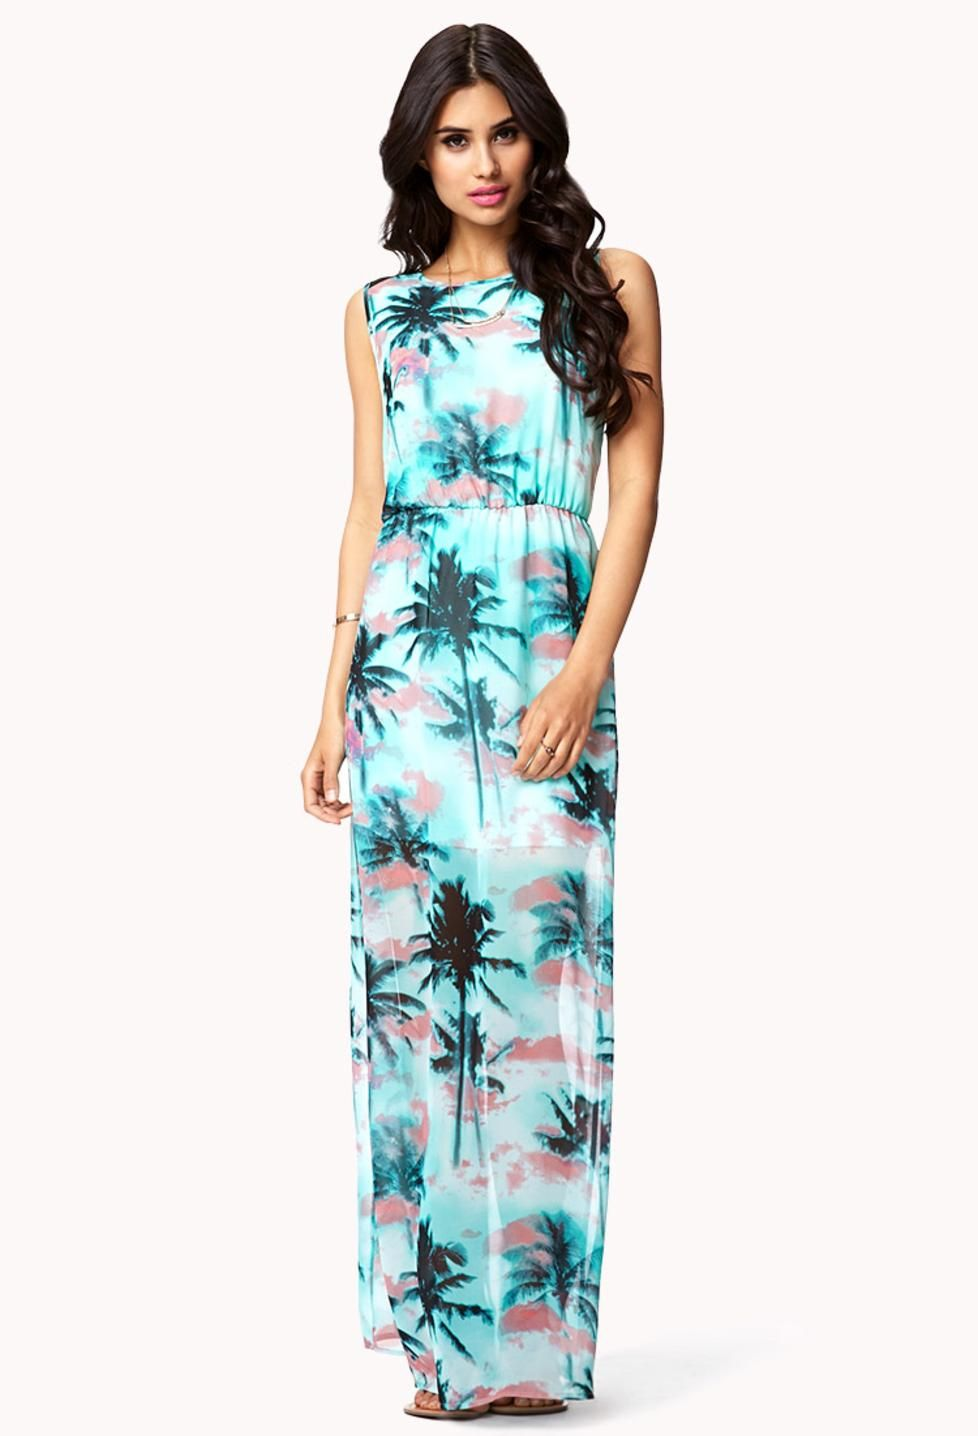 Forever 21 Is The Authority On Fashion Go To Retailer For Latest Trends Must Have Styles Hottest Deals Dresses Tops Tees